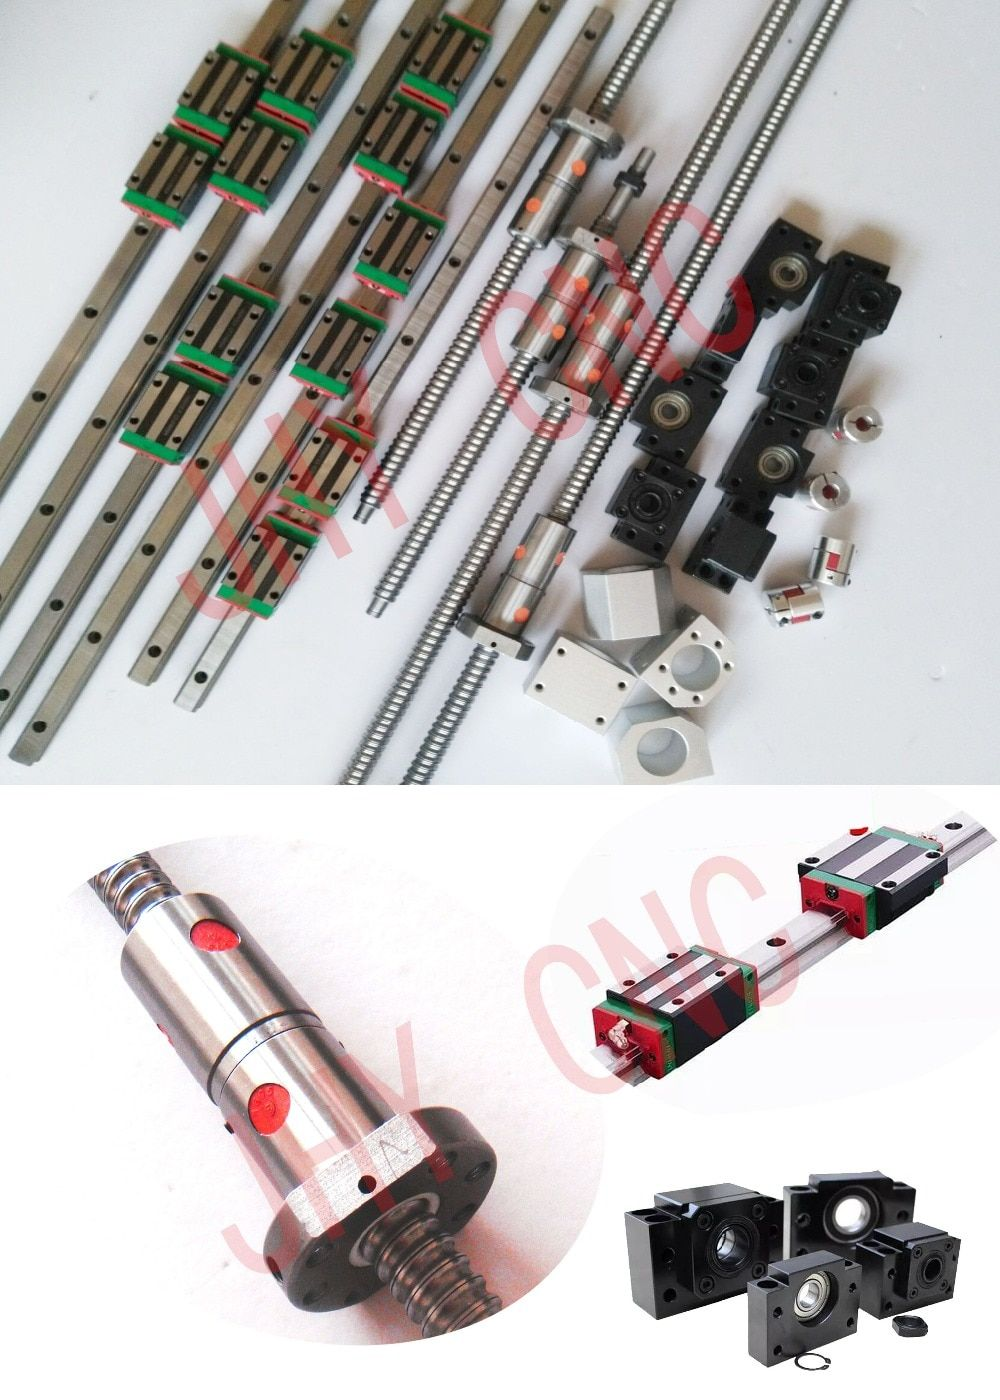 20mm JHY Linear guide rail carriages , DFU2005 Ball screws with DOUBLE BALLNUT and 3kw spindle motor set (refer to discription)